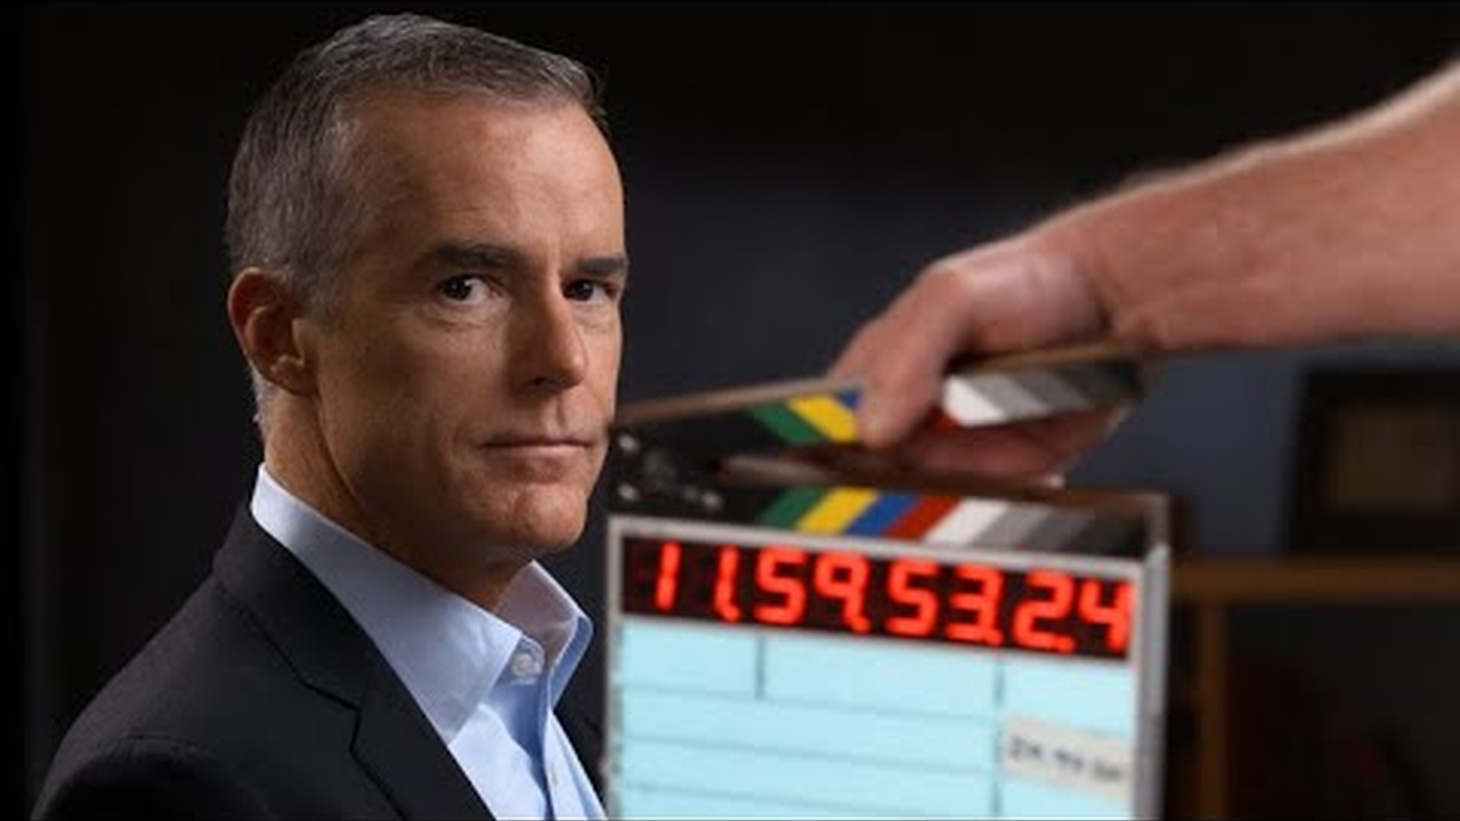 Andrew McCabe on 60 Minutes